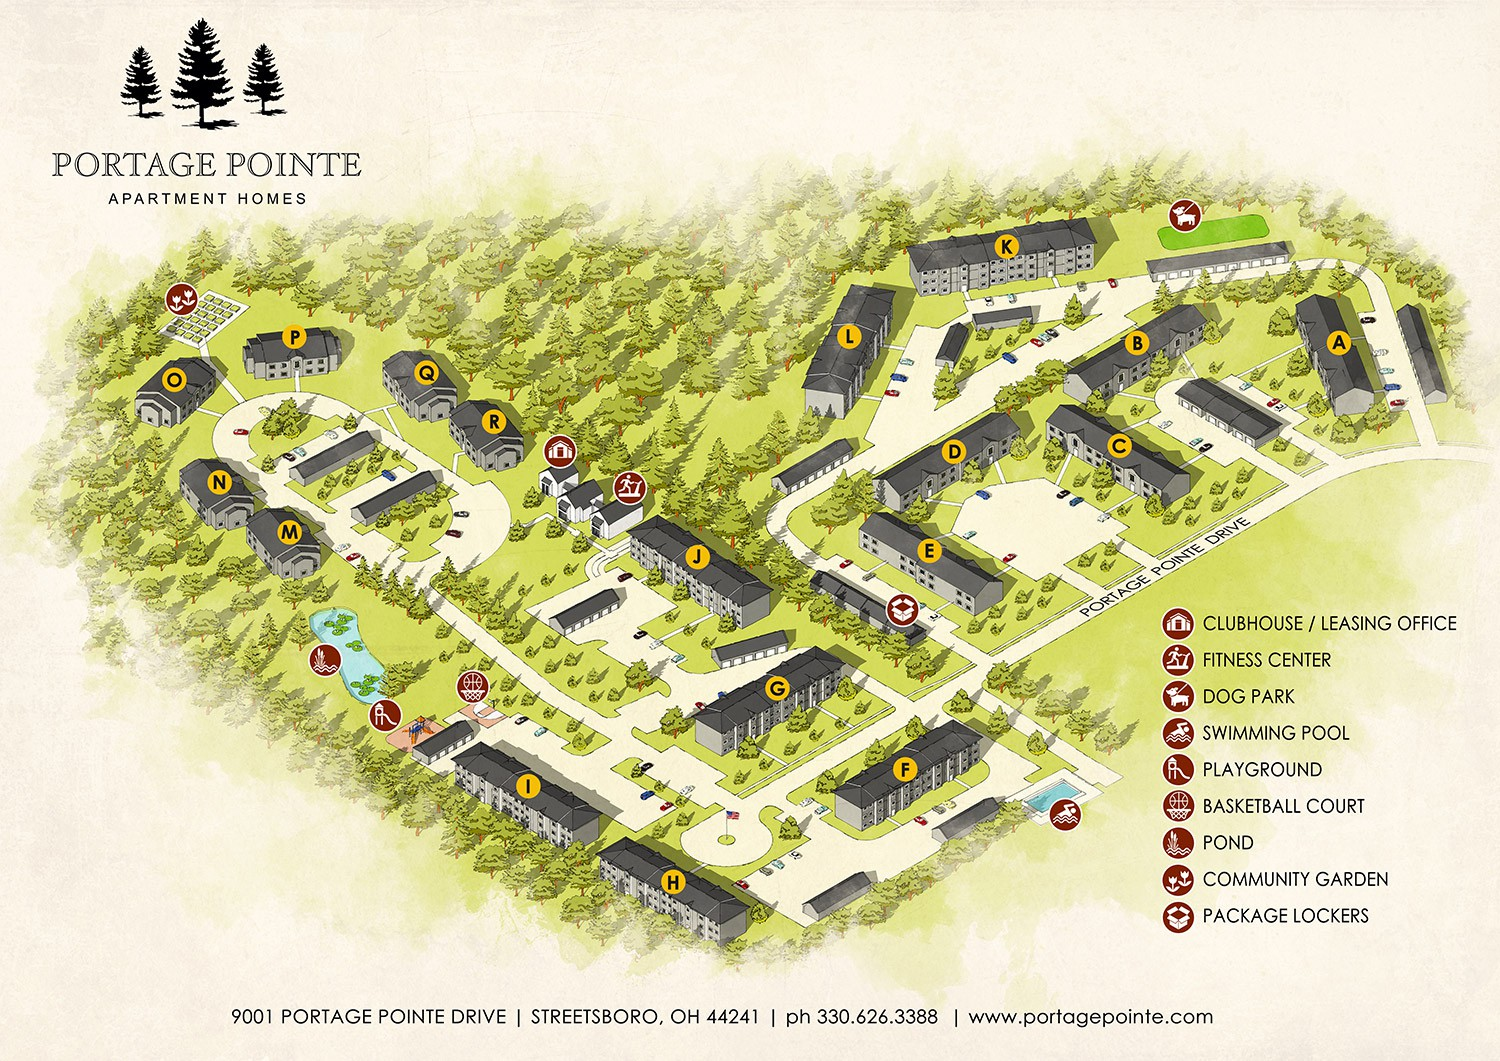 Design a Sight Map for an apartment community